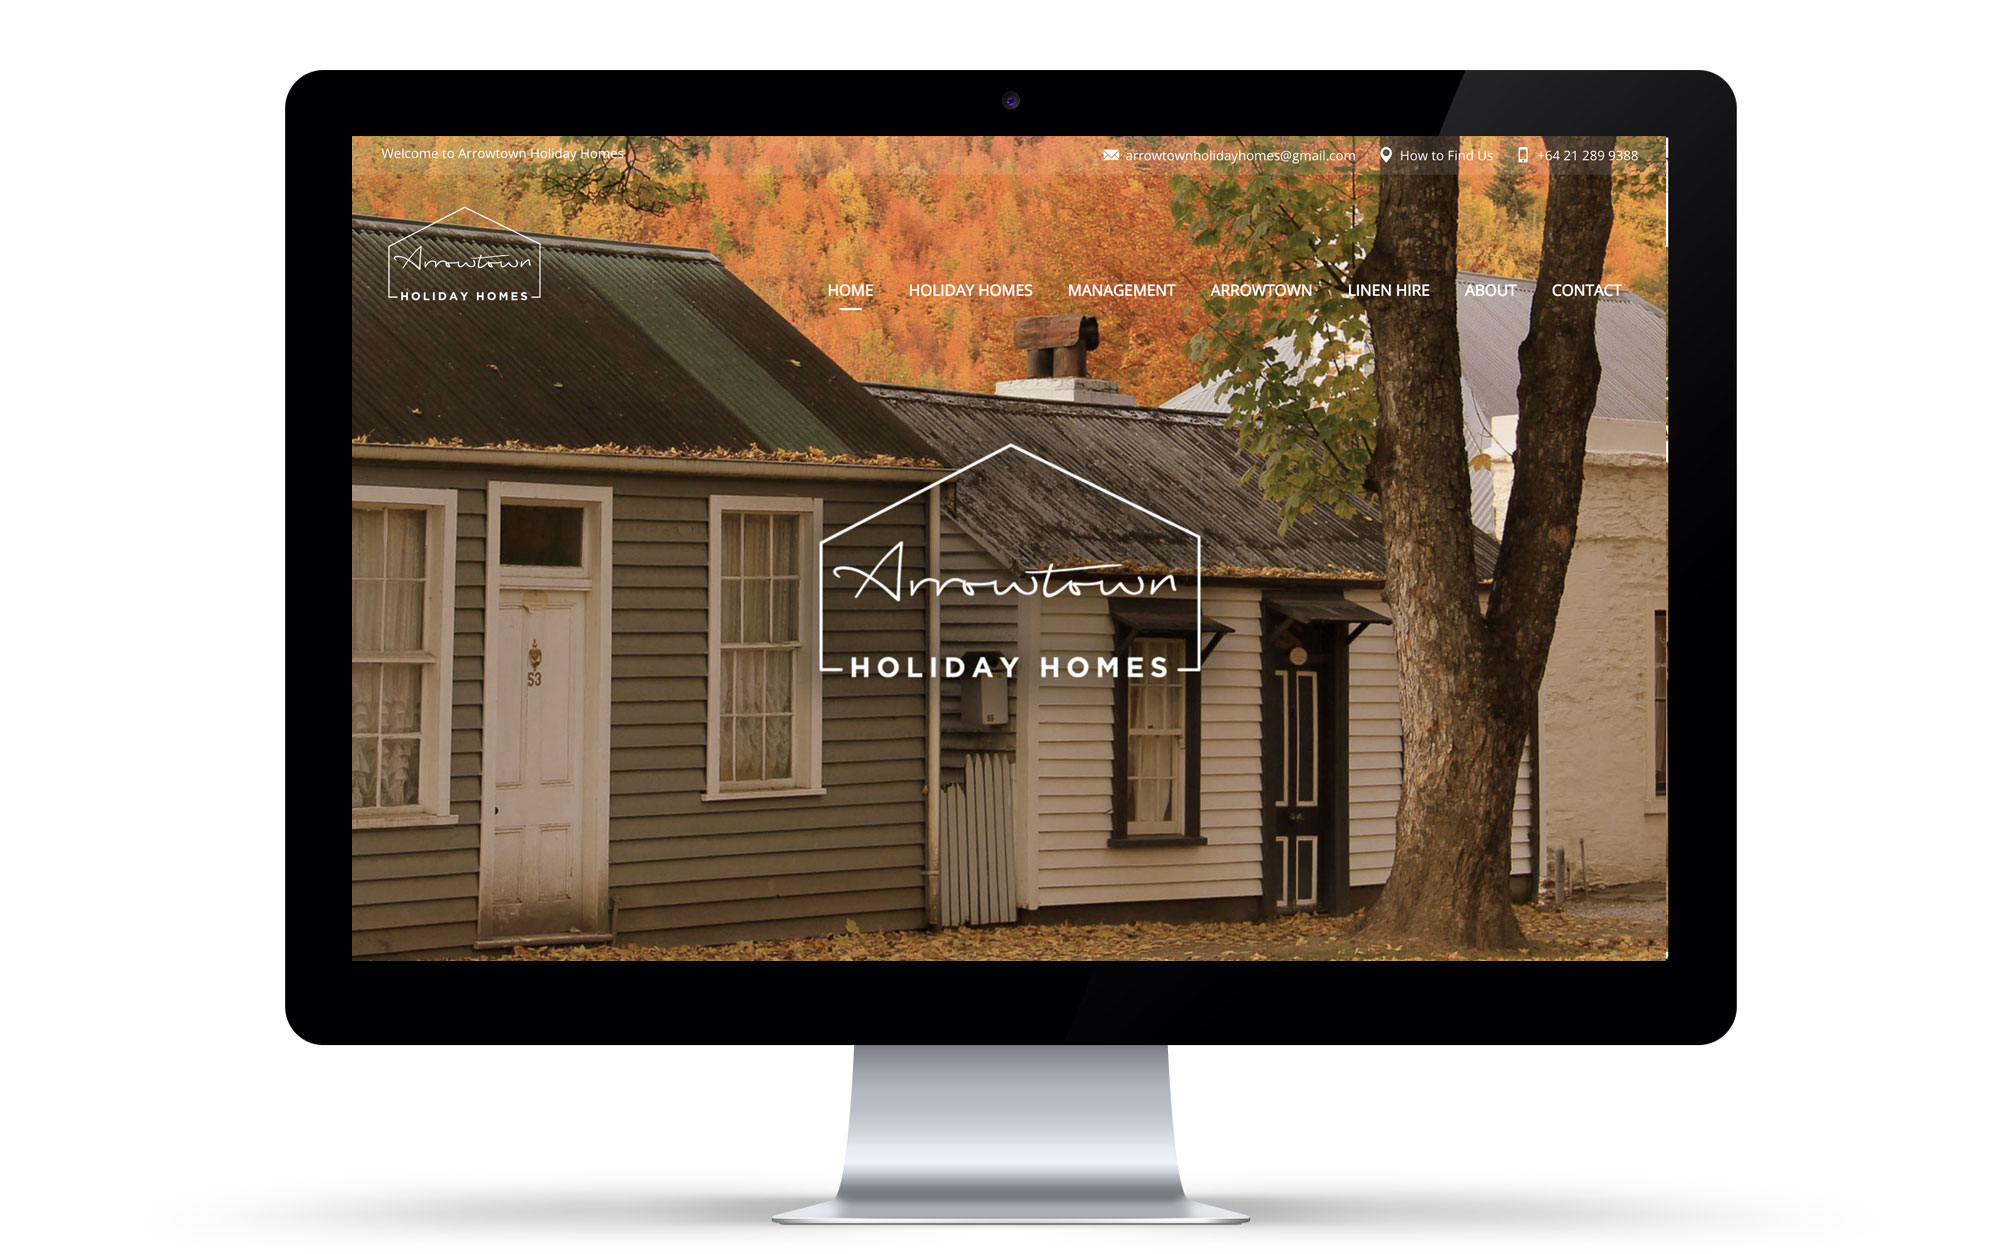 Arrowtown Holiday Homes